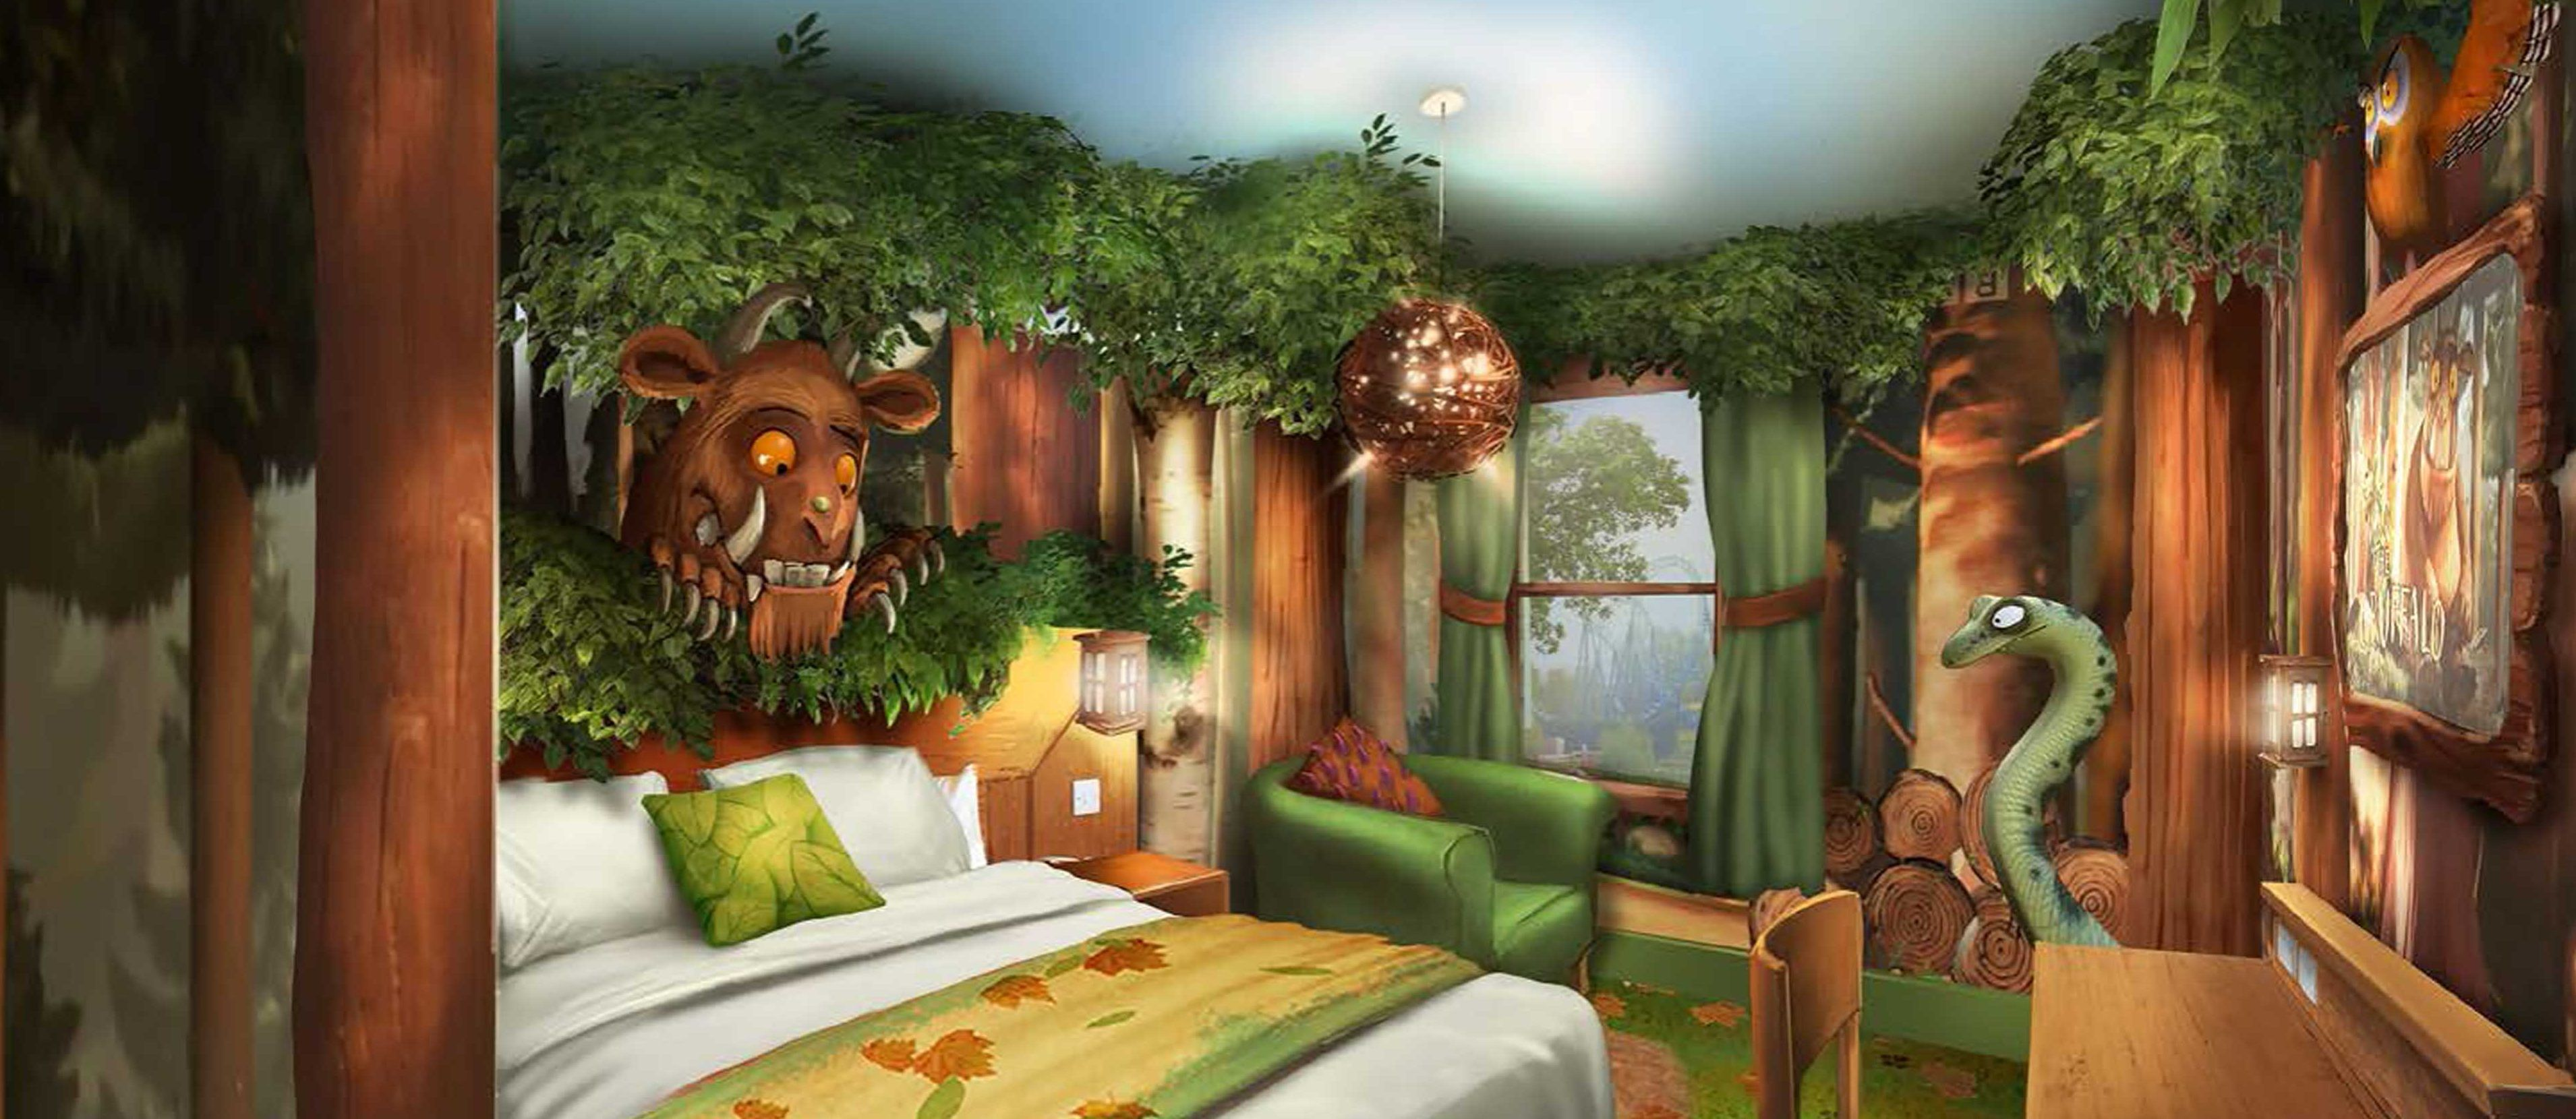 Take a sleep in the Deep Dark Wood after a day on park and riding The Gruffalo River Ride Adventure.